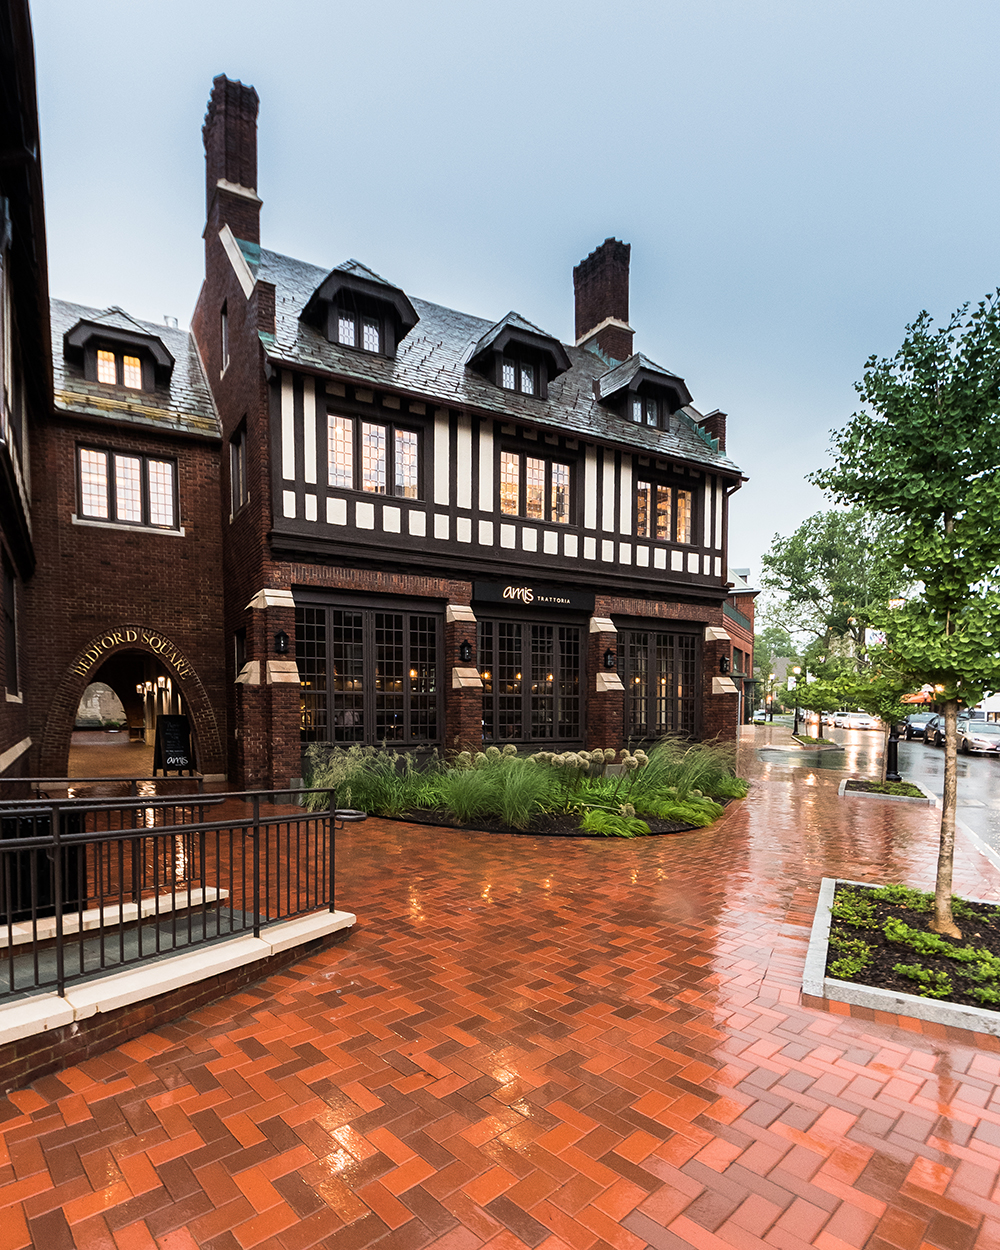 Tudor-style mansion adaptive reuse project for Anthropologie & Co. at Bedford Square, by NewStudio Architecture